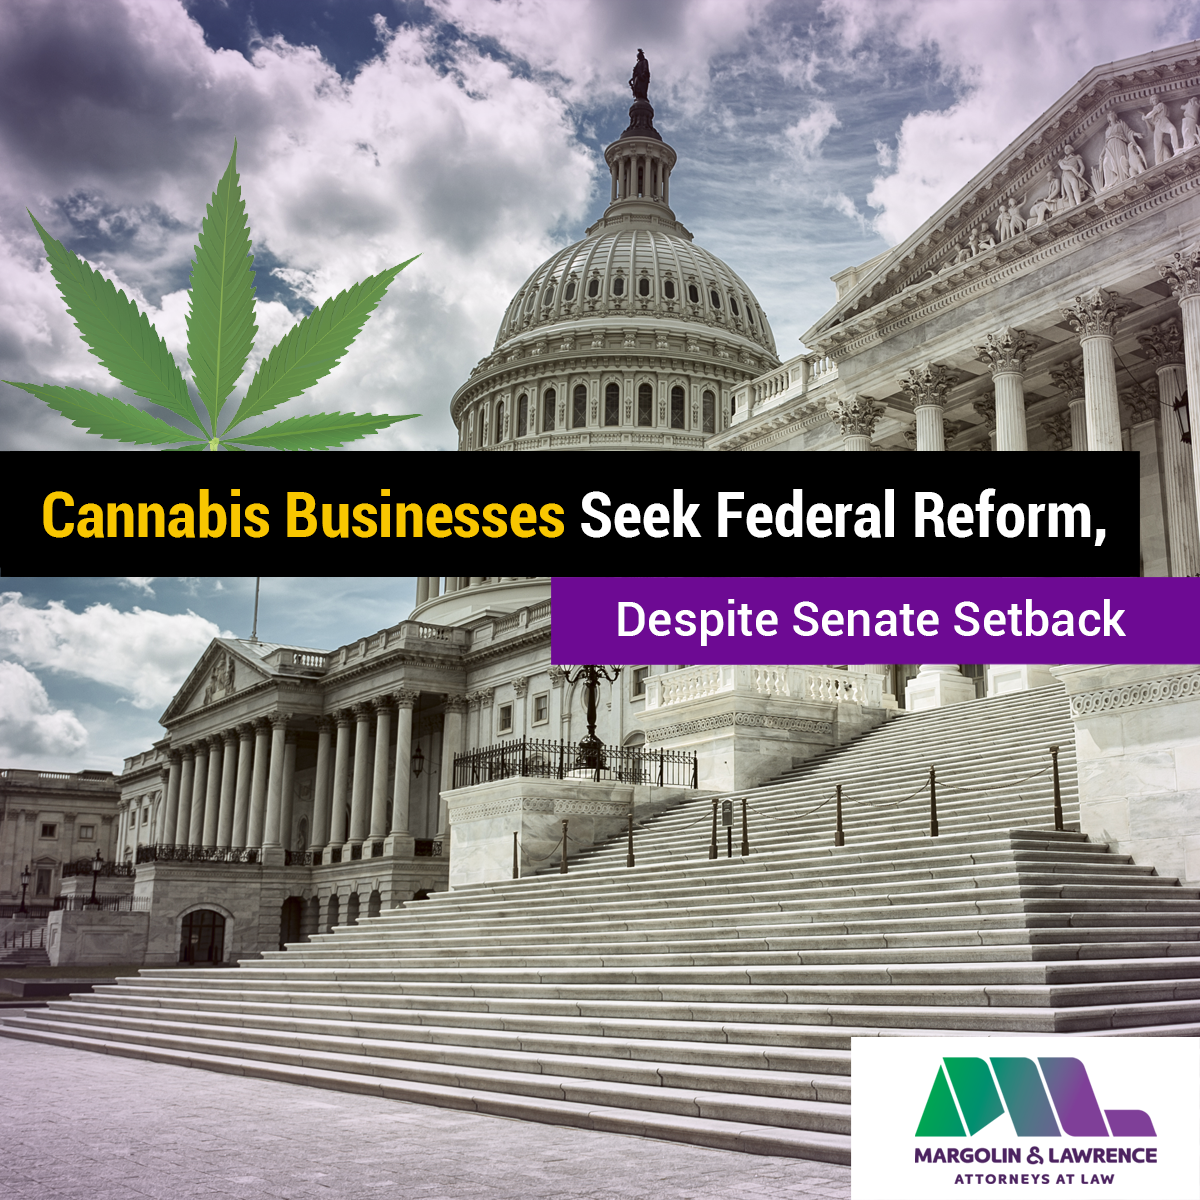 Cannabis Businesses Seek Federal Reform, Despite Senate Setback